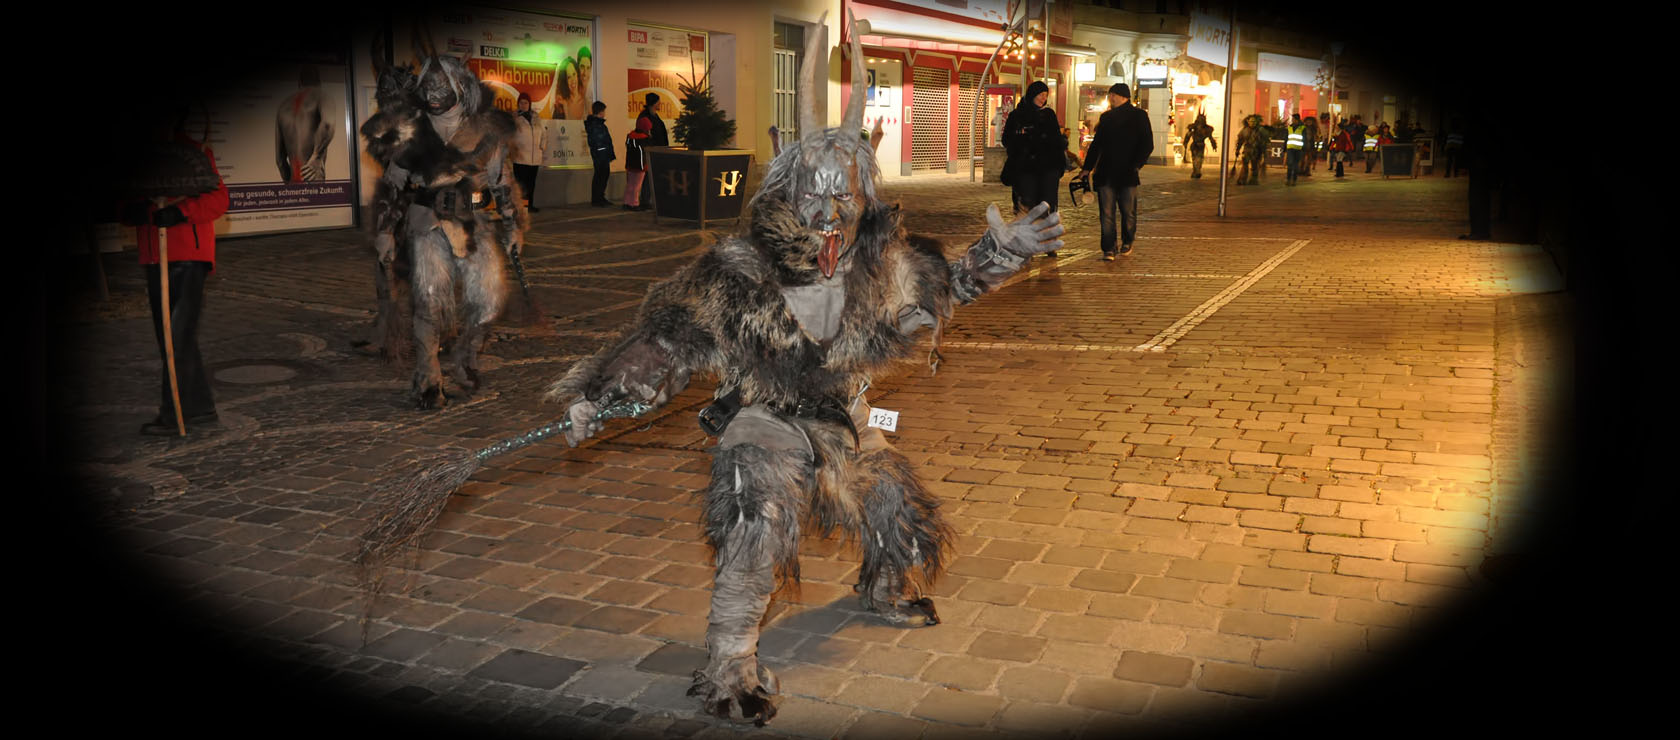 Krampuslauf in Hollabrunn 2013